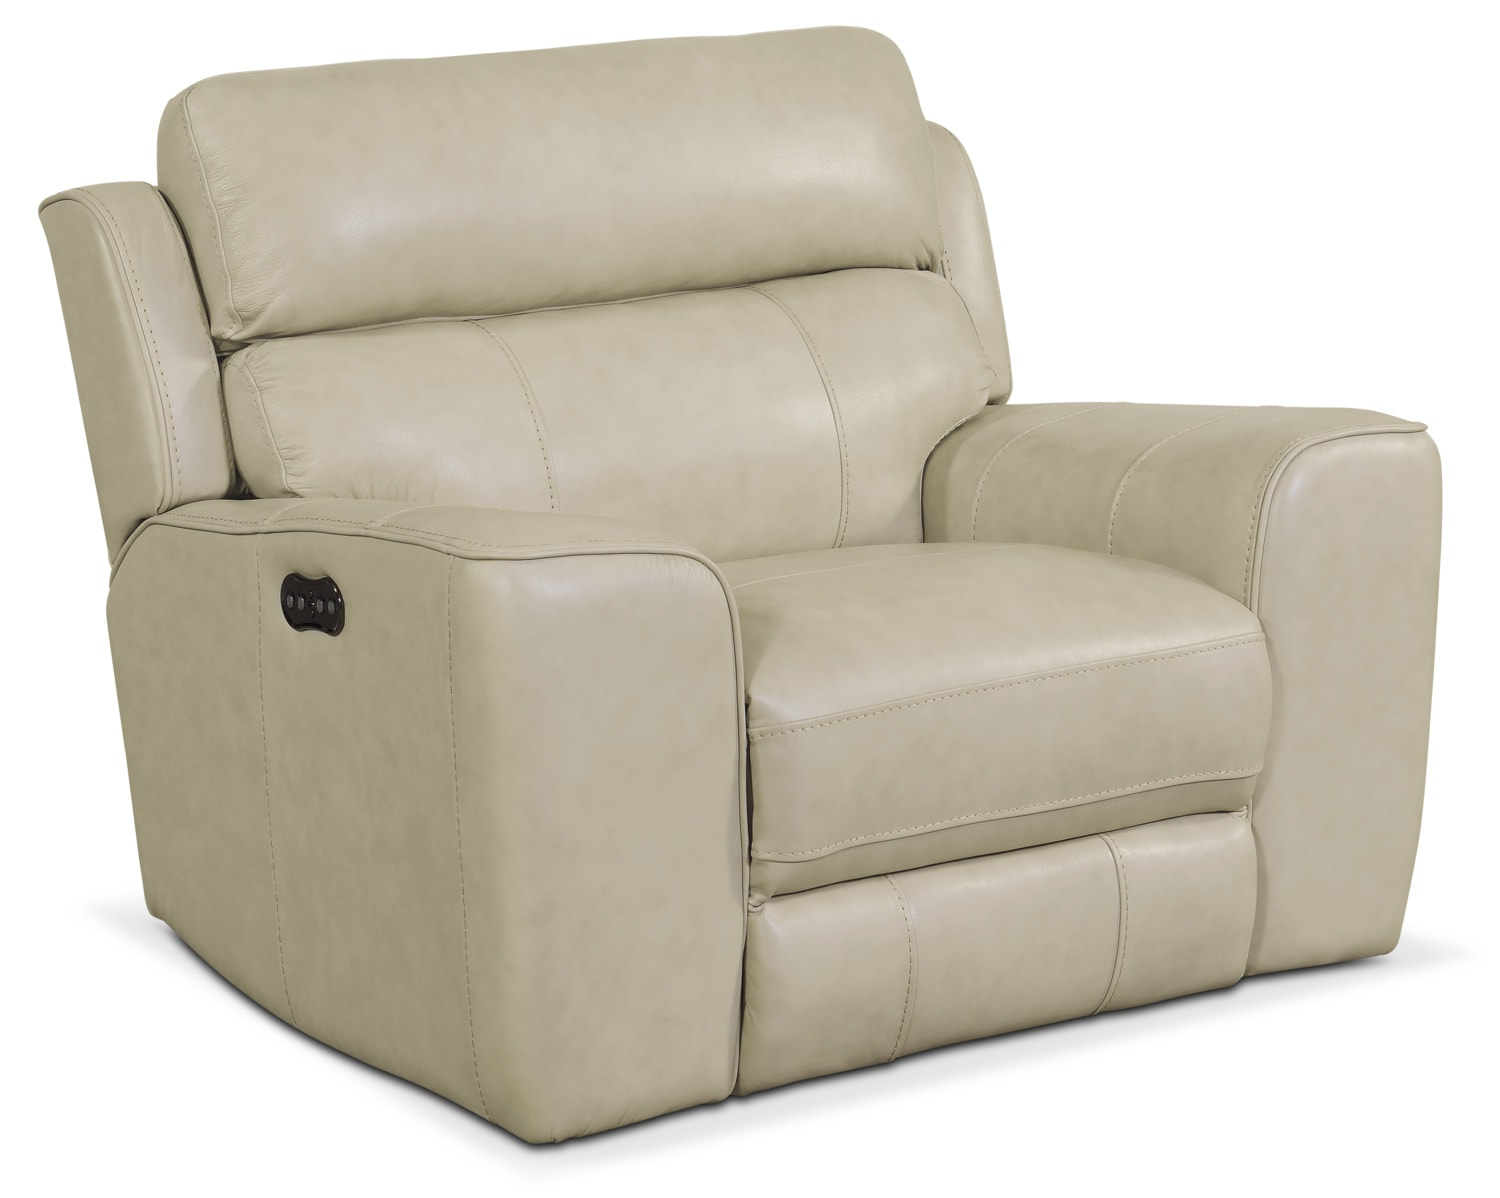 Newport Power Recliner - Cream